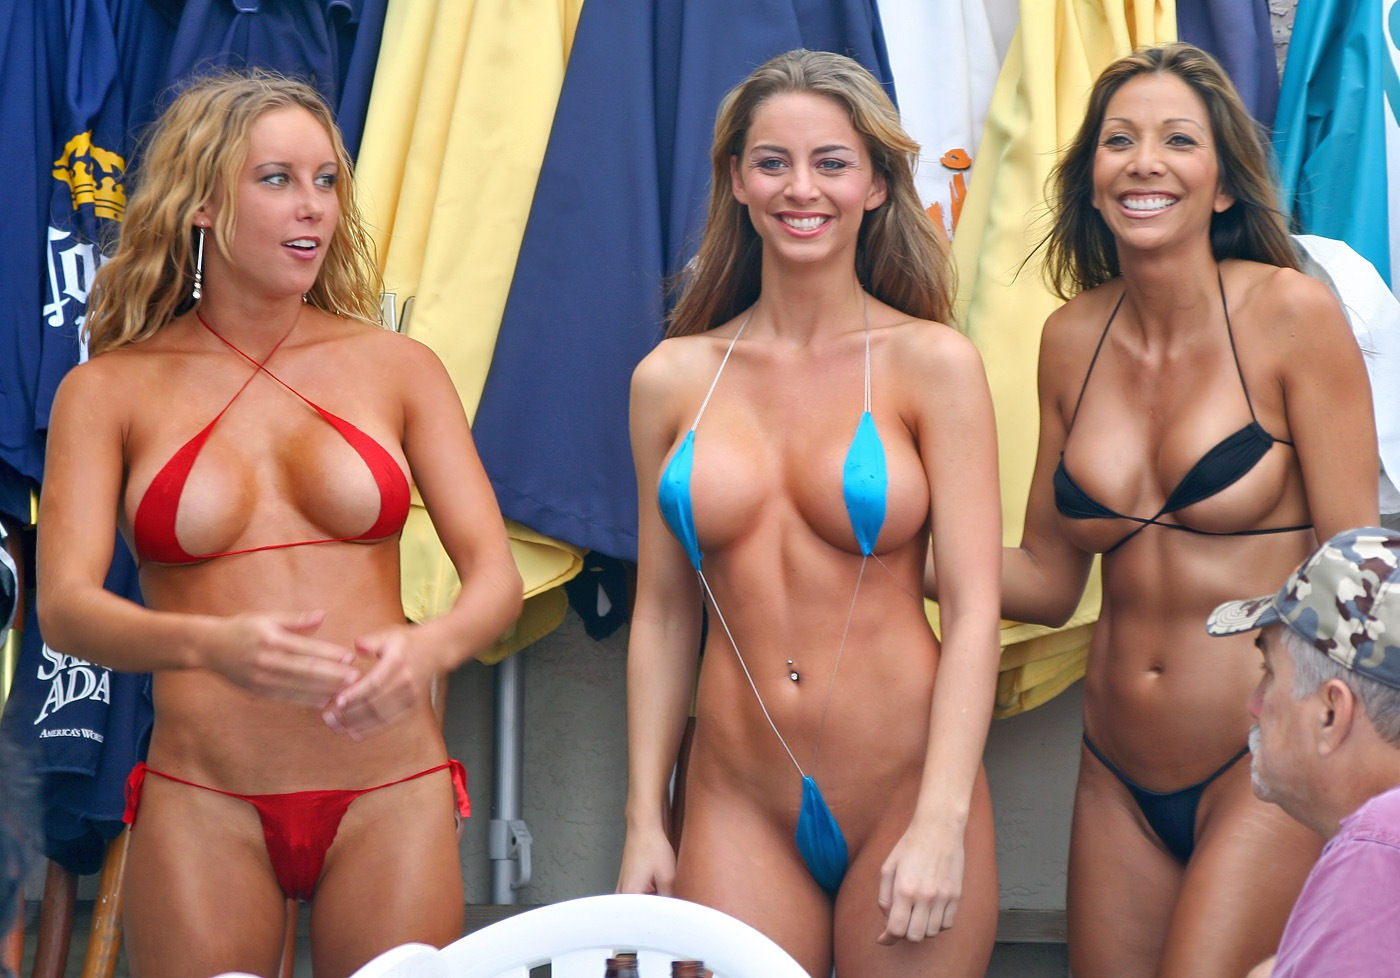 Same and bikini break contest photo spring